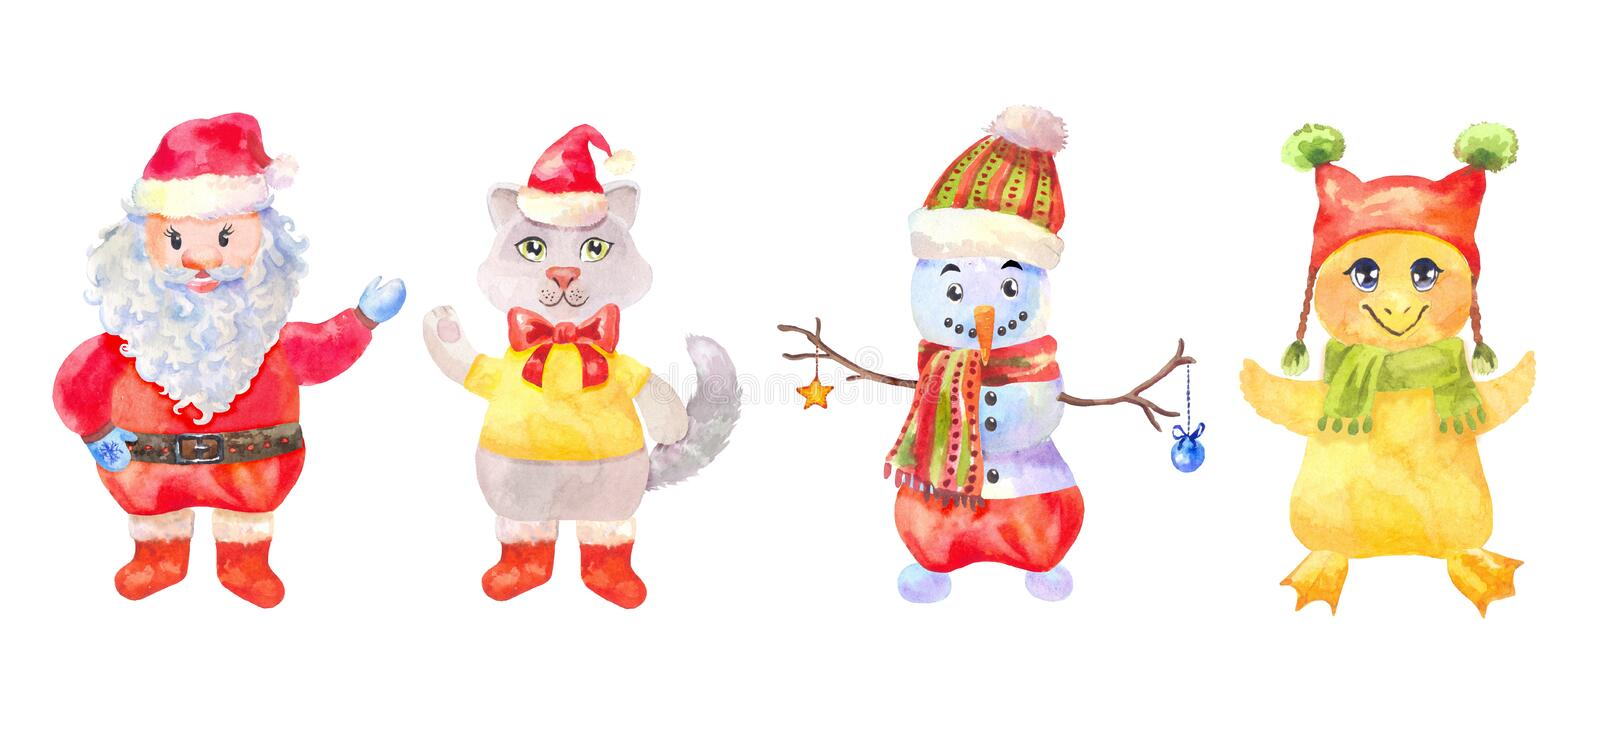 Funny Christmas characters drawn with watercolor isolated on white. New year characters. Funny santa, snowman, chick and cat in Christmas costumes. Watercolor royalty free illustration